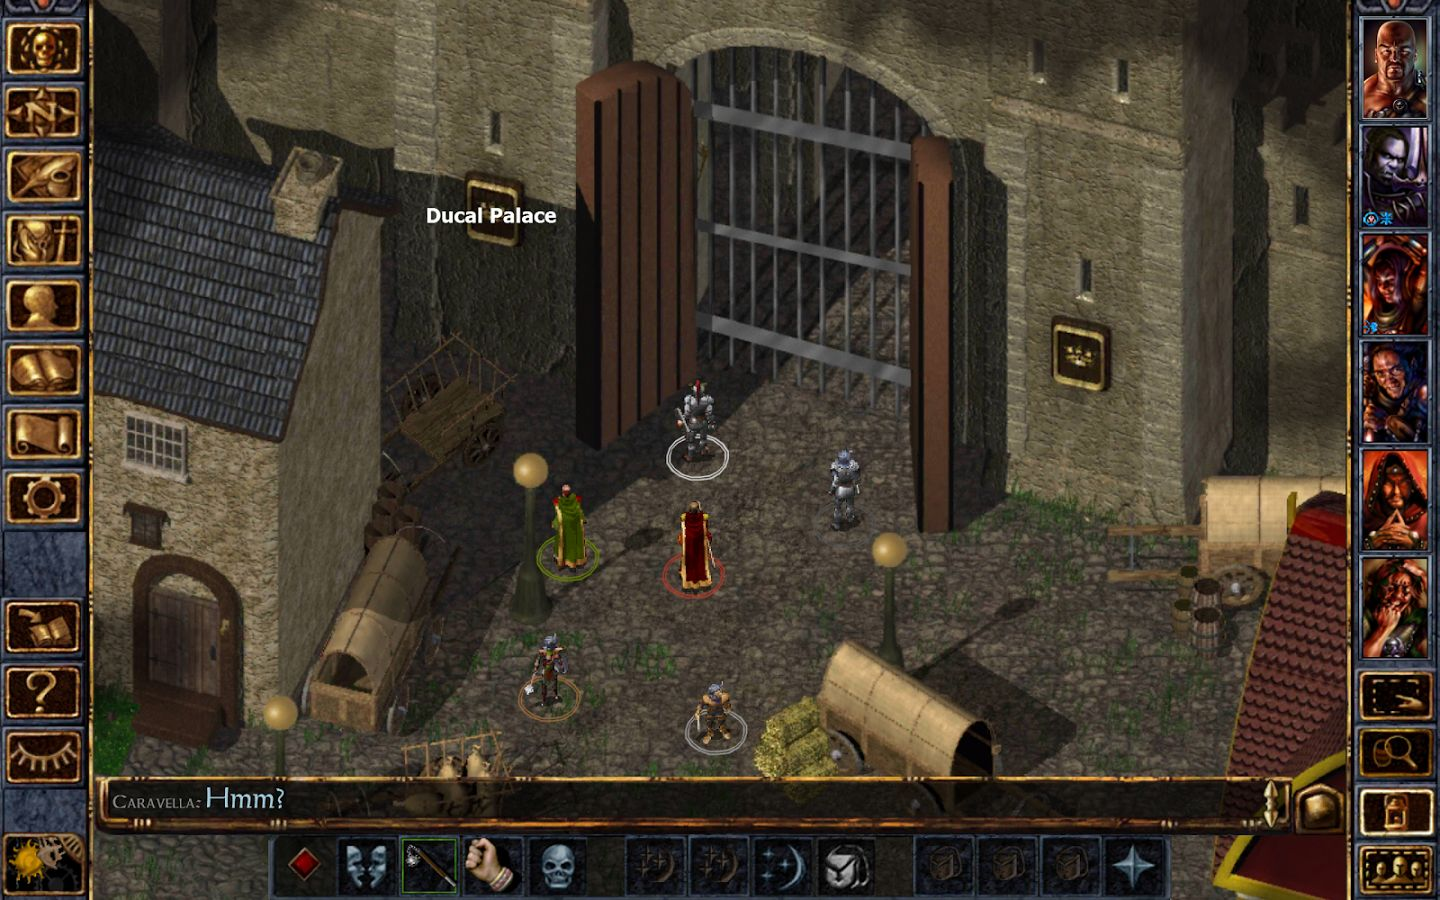 Baldur's Gate 3 is in the works, apparently